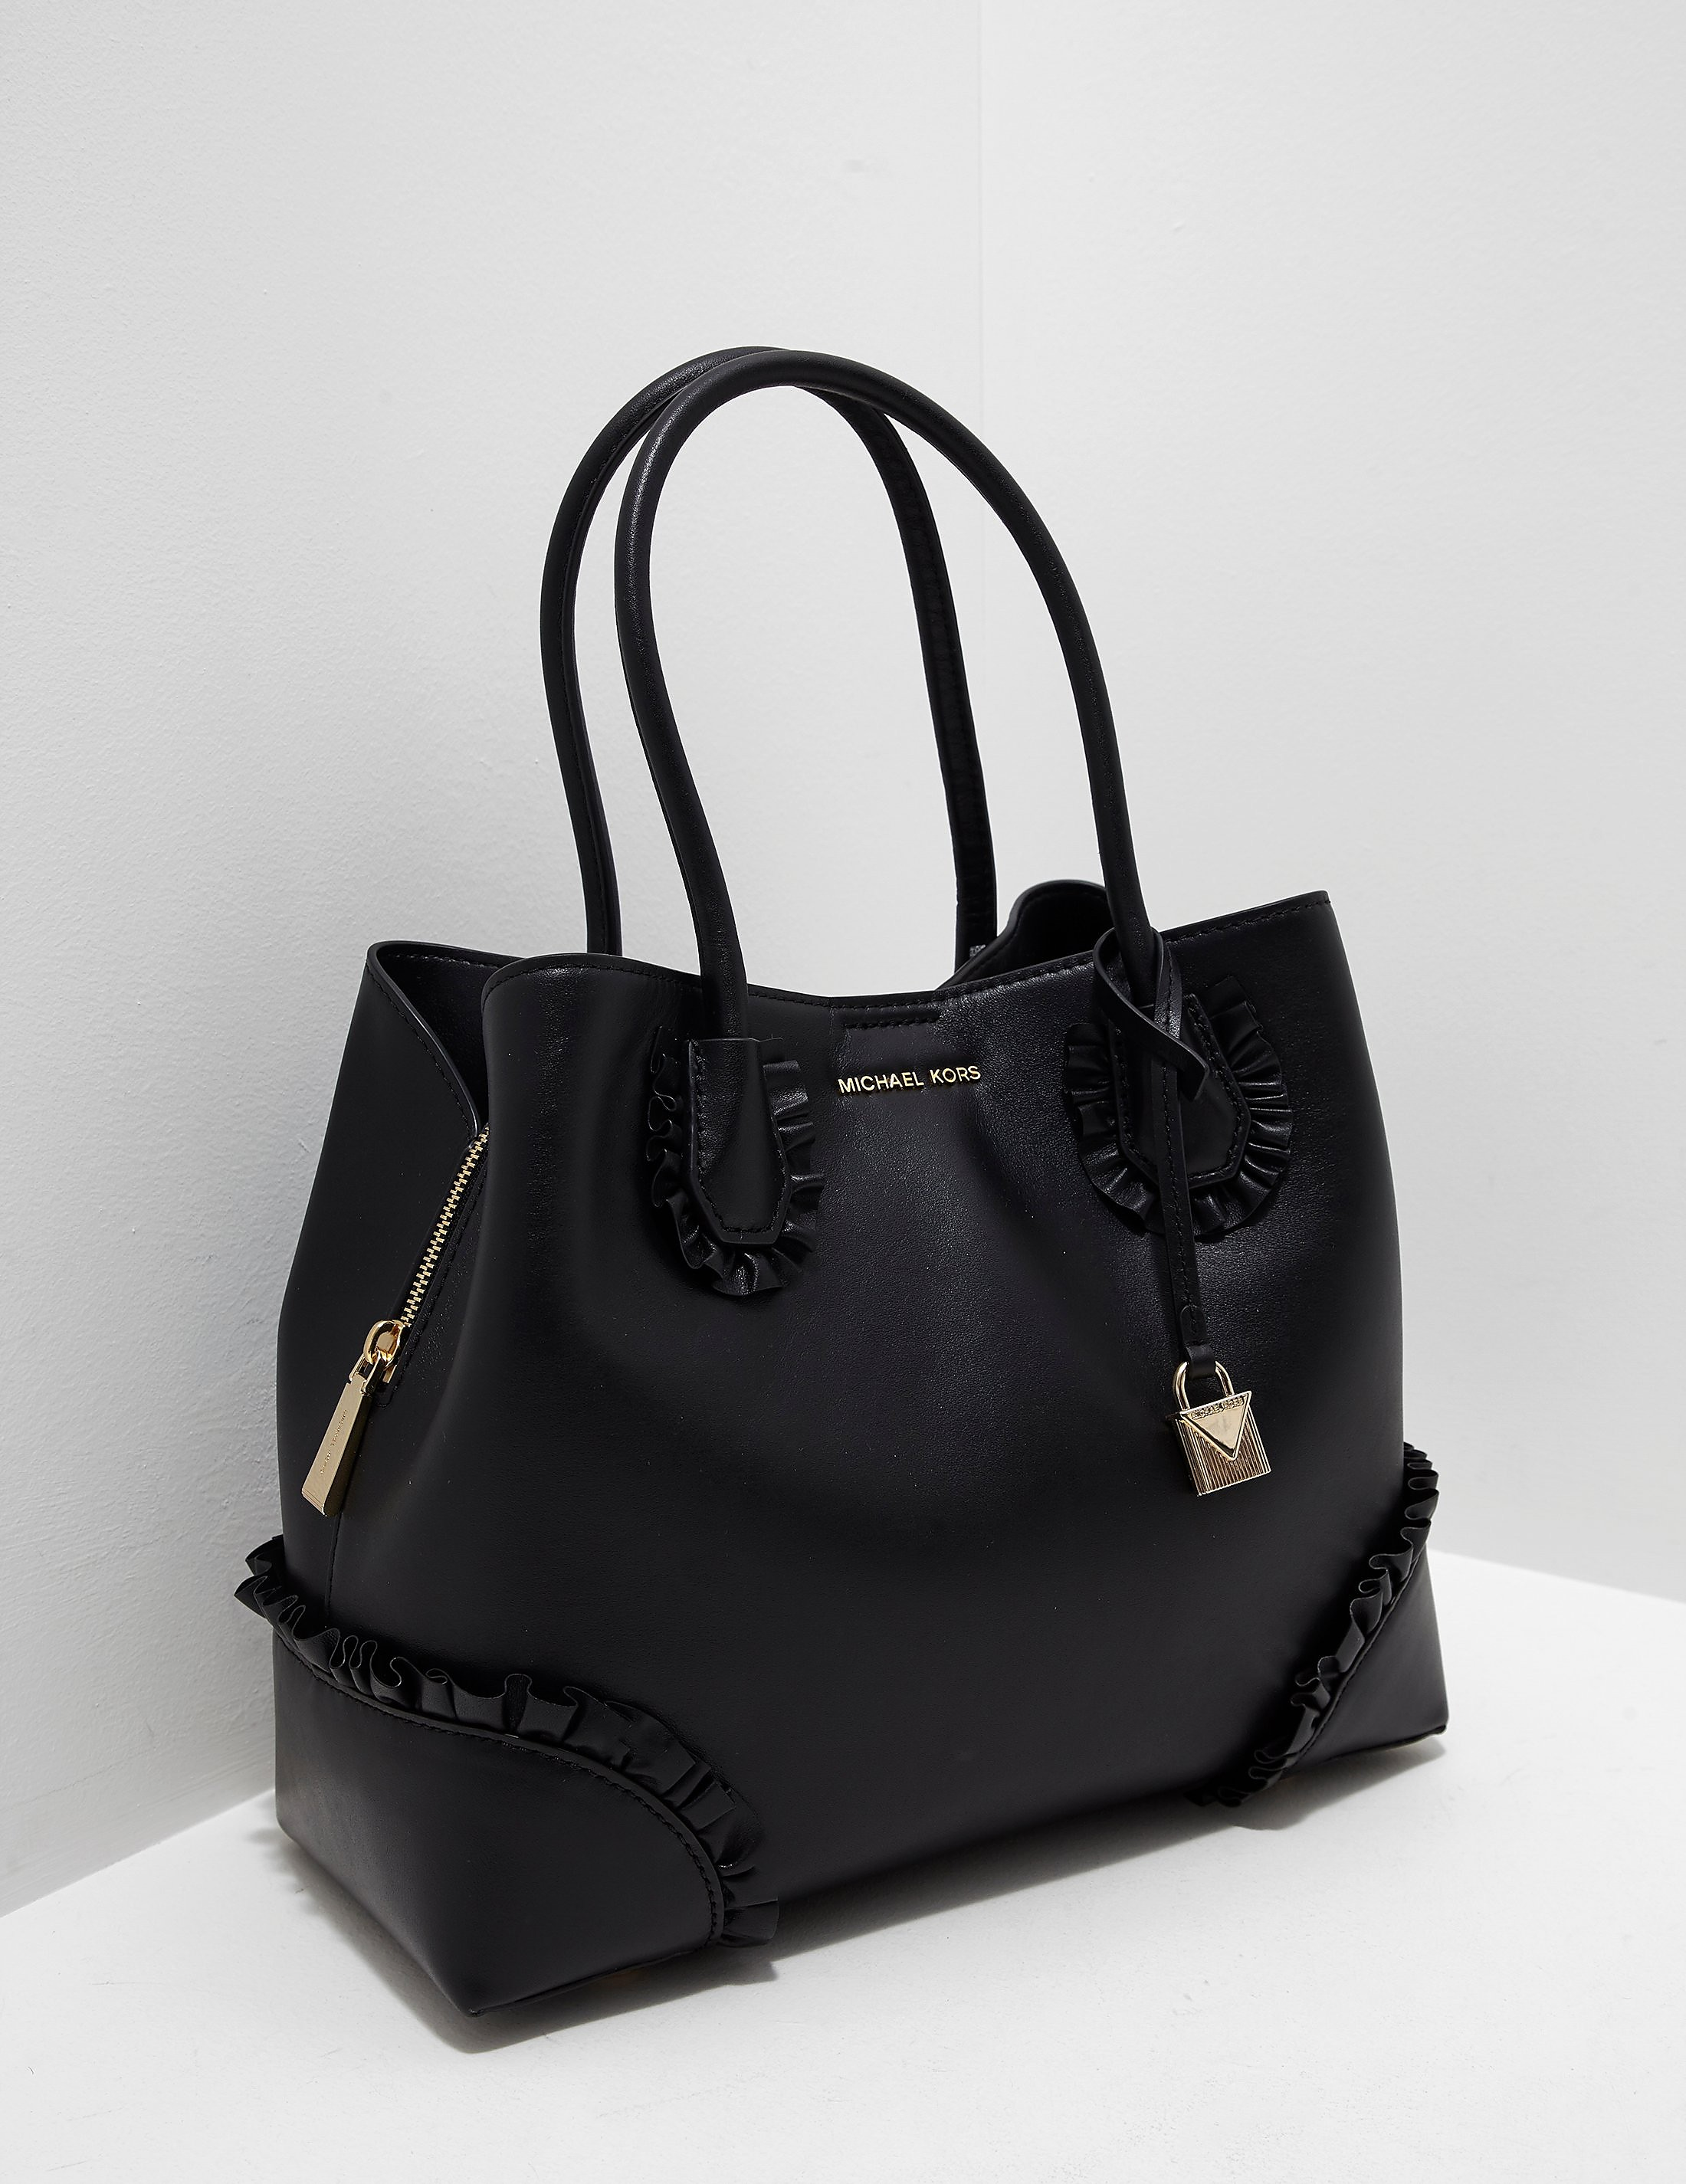 Michael Kors Mercer Frill Tote Bag